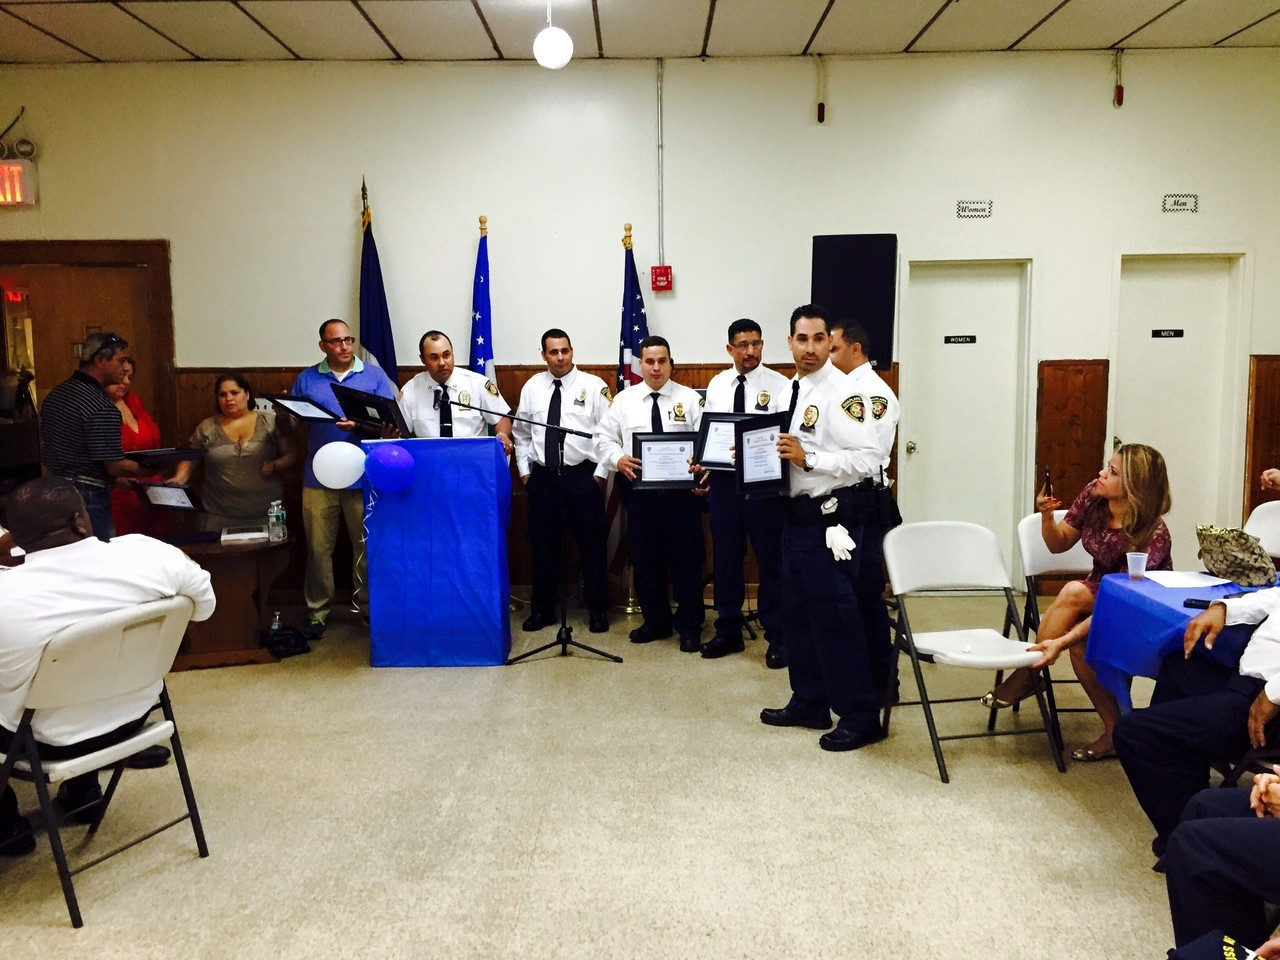 75th. Precinct Recognition Day